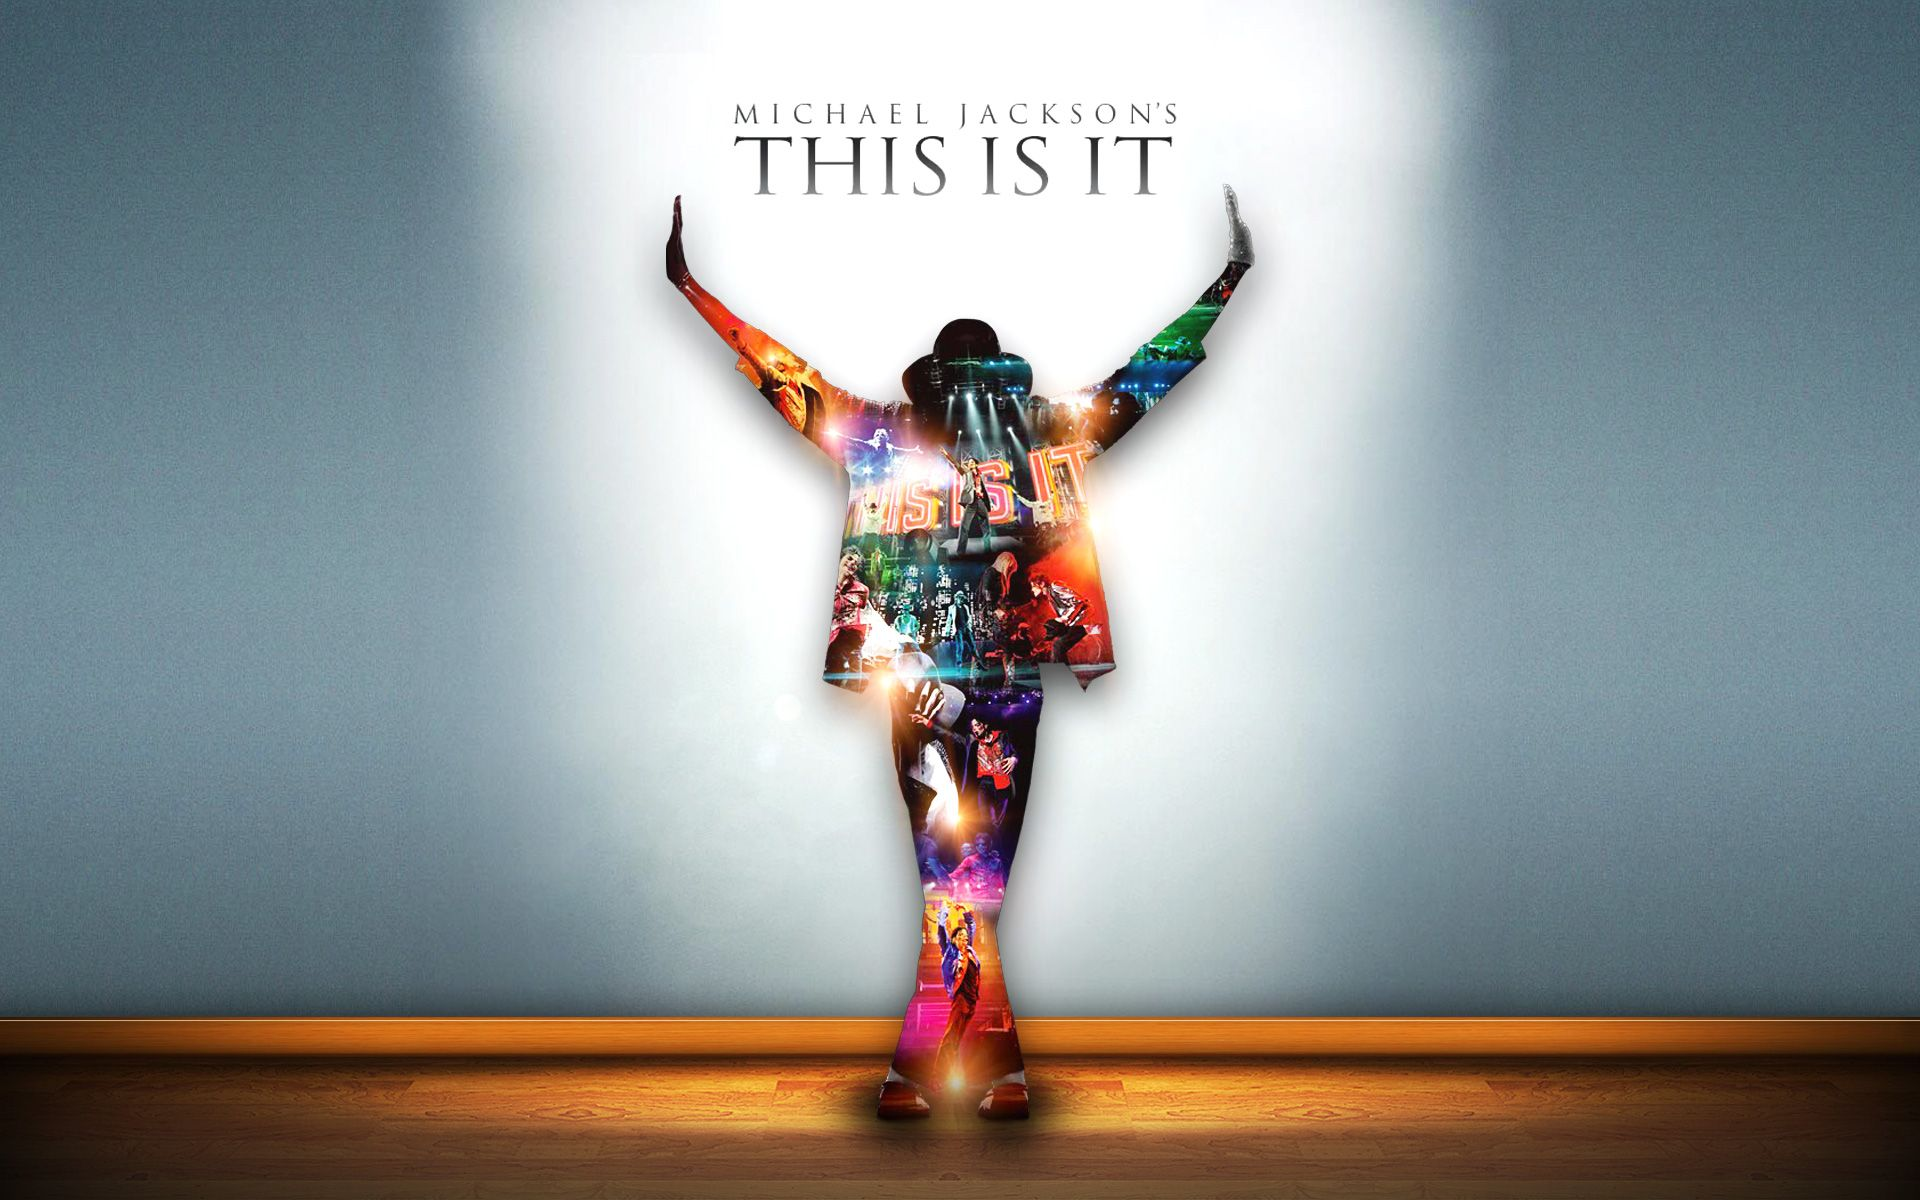 michael jackson this is it (With images) Michael jackson